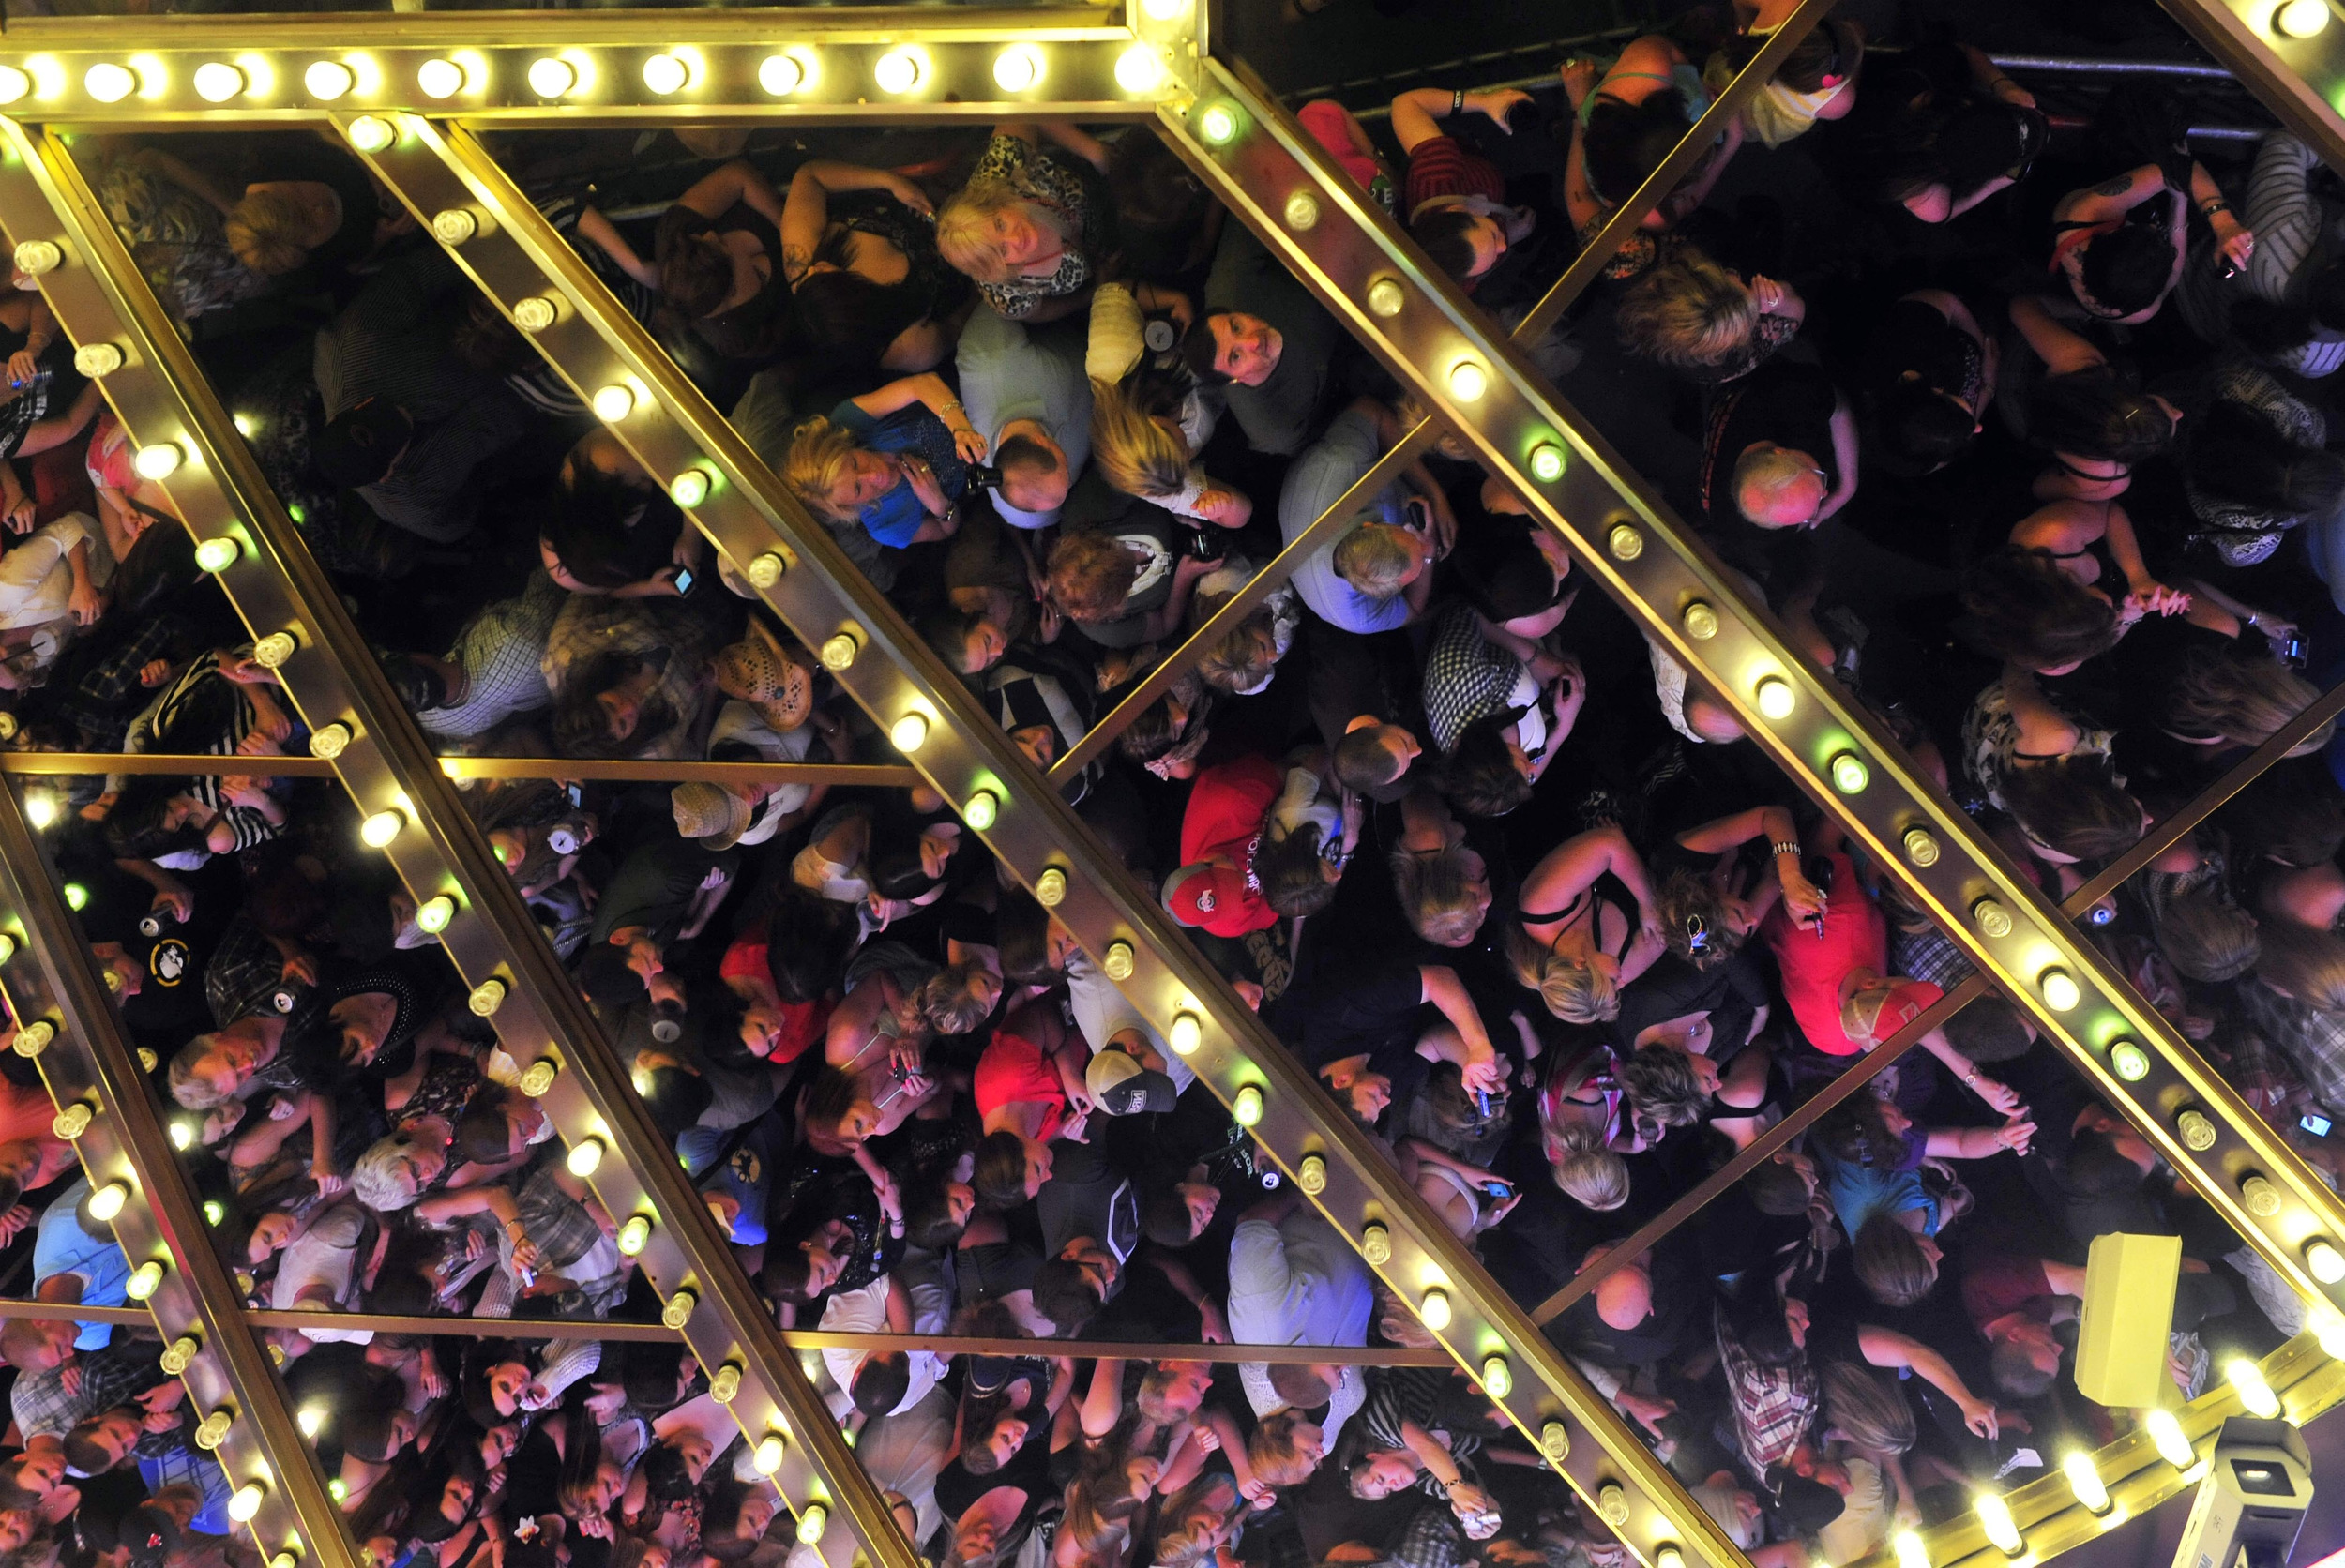 Fans reflected in a casino mirrored overhang are packed shoulder to shoulder at an outdoor concert in downtown Las Vegas during ACM week March 30, 2012 in Las Vegas, Nev.